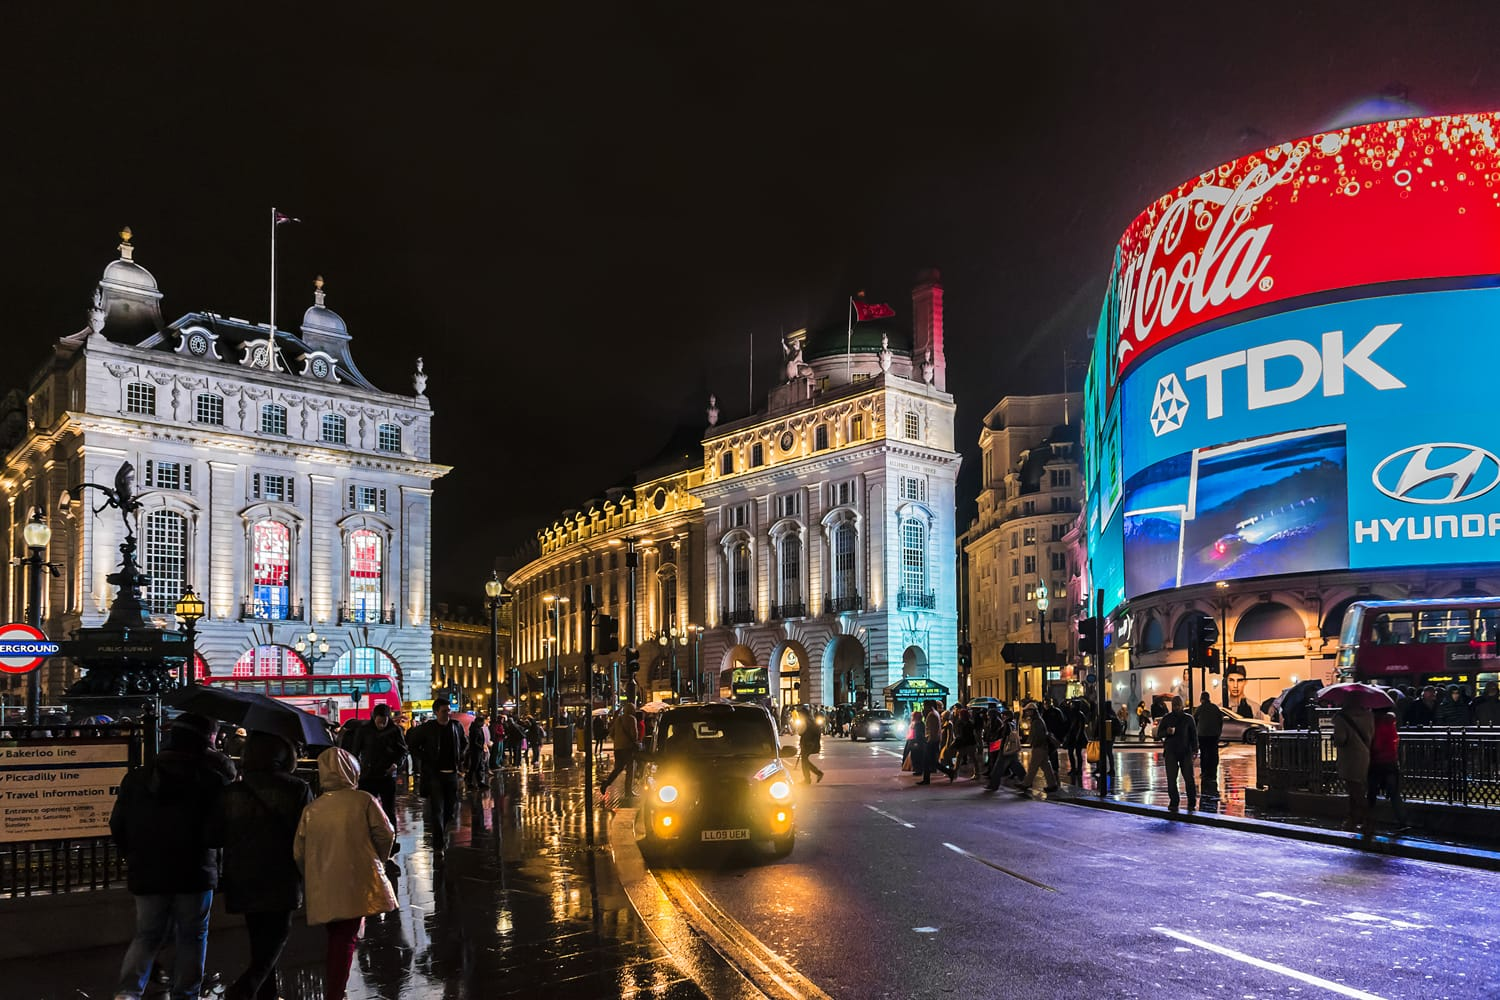 Famous Piccadilly Circus neon signage shines at rainy night. These signs have become a major attraction of London, United Kingdom